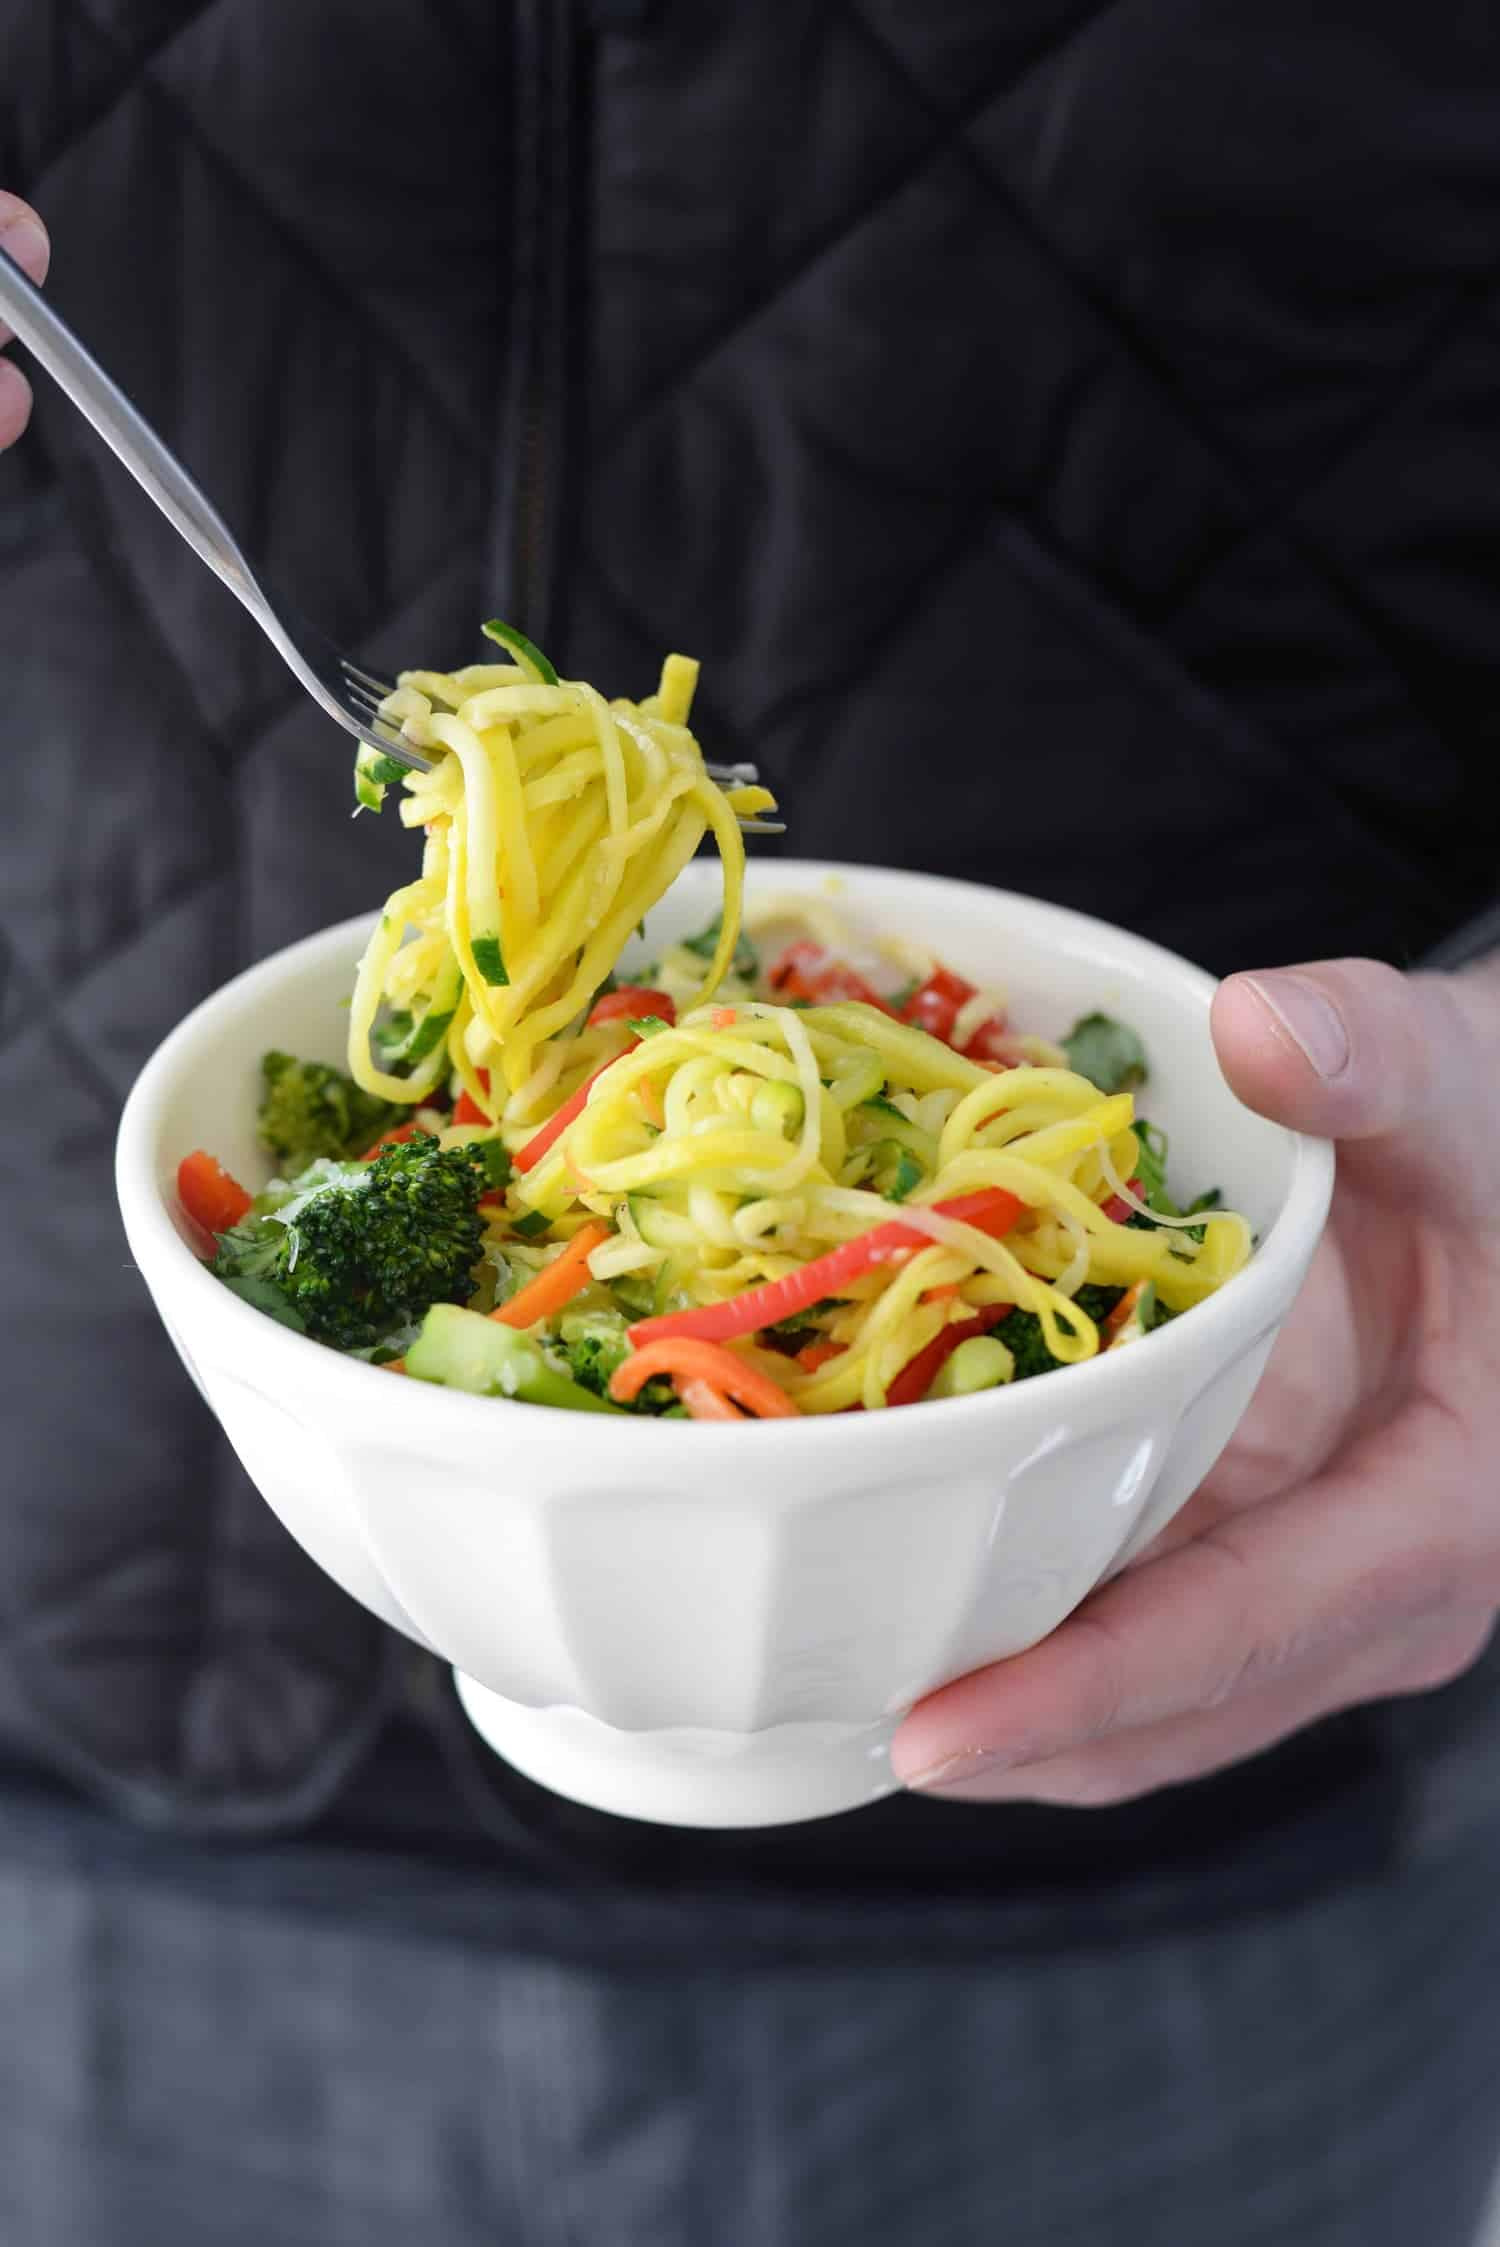 Fork curling and eating the zucchini noodle primavera